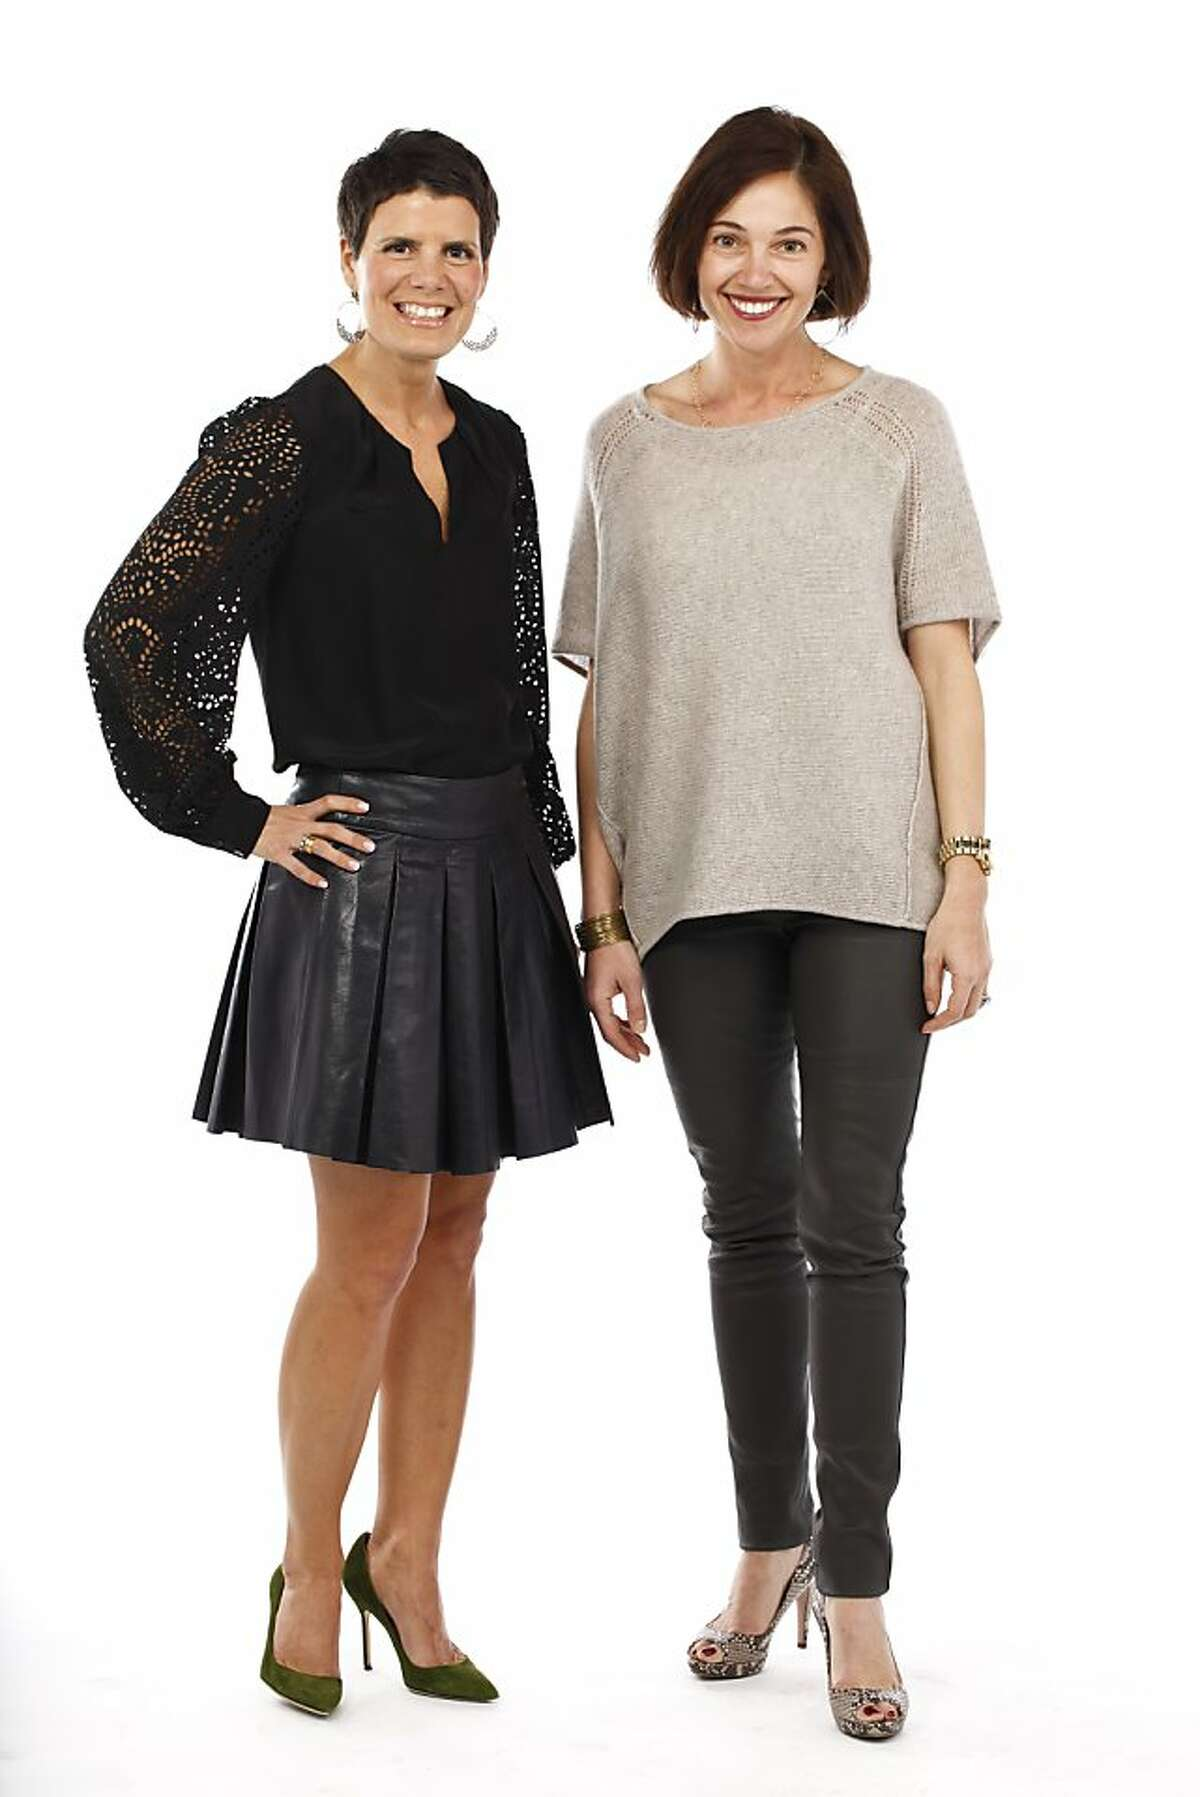 STYLEMAKER SPOTLIGHT: NANCY EVARS AND DIMITRA ANDERSON